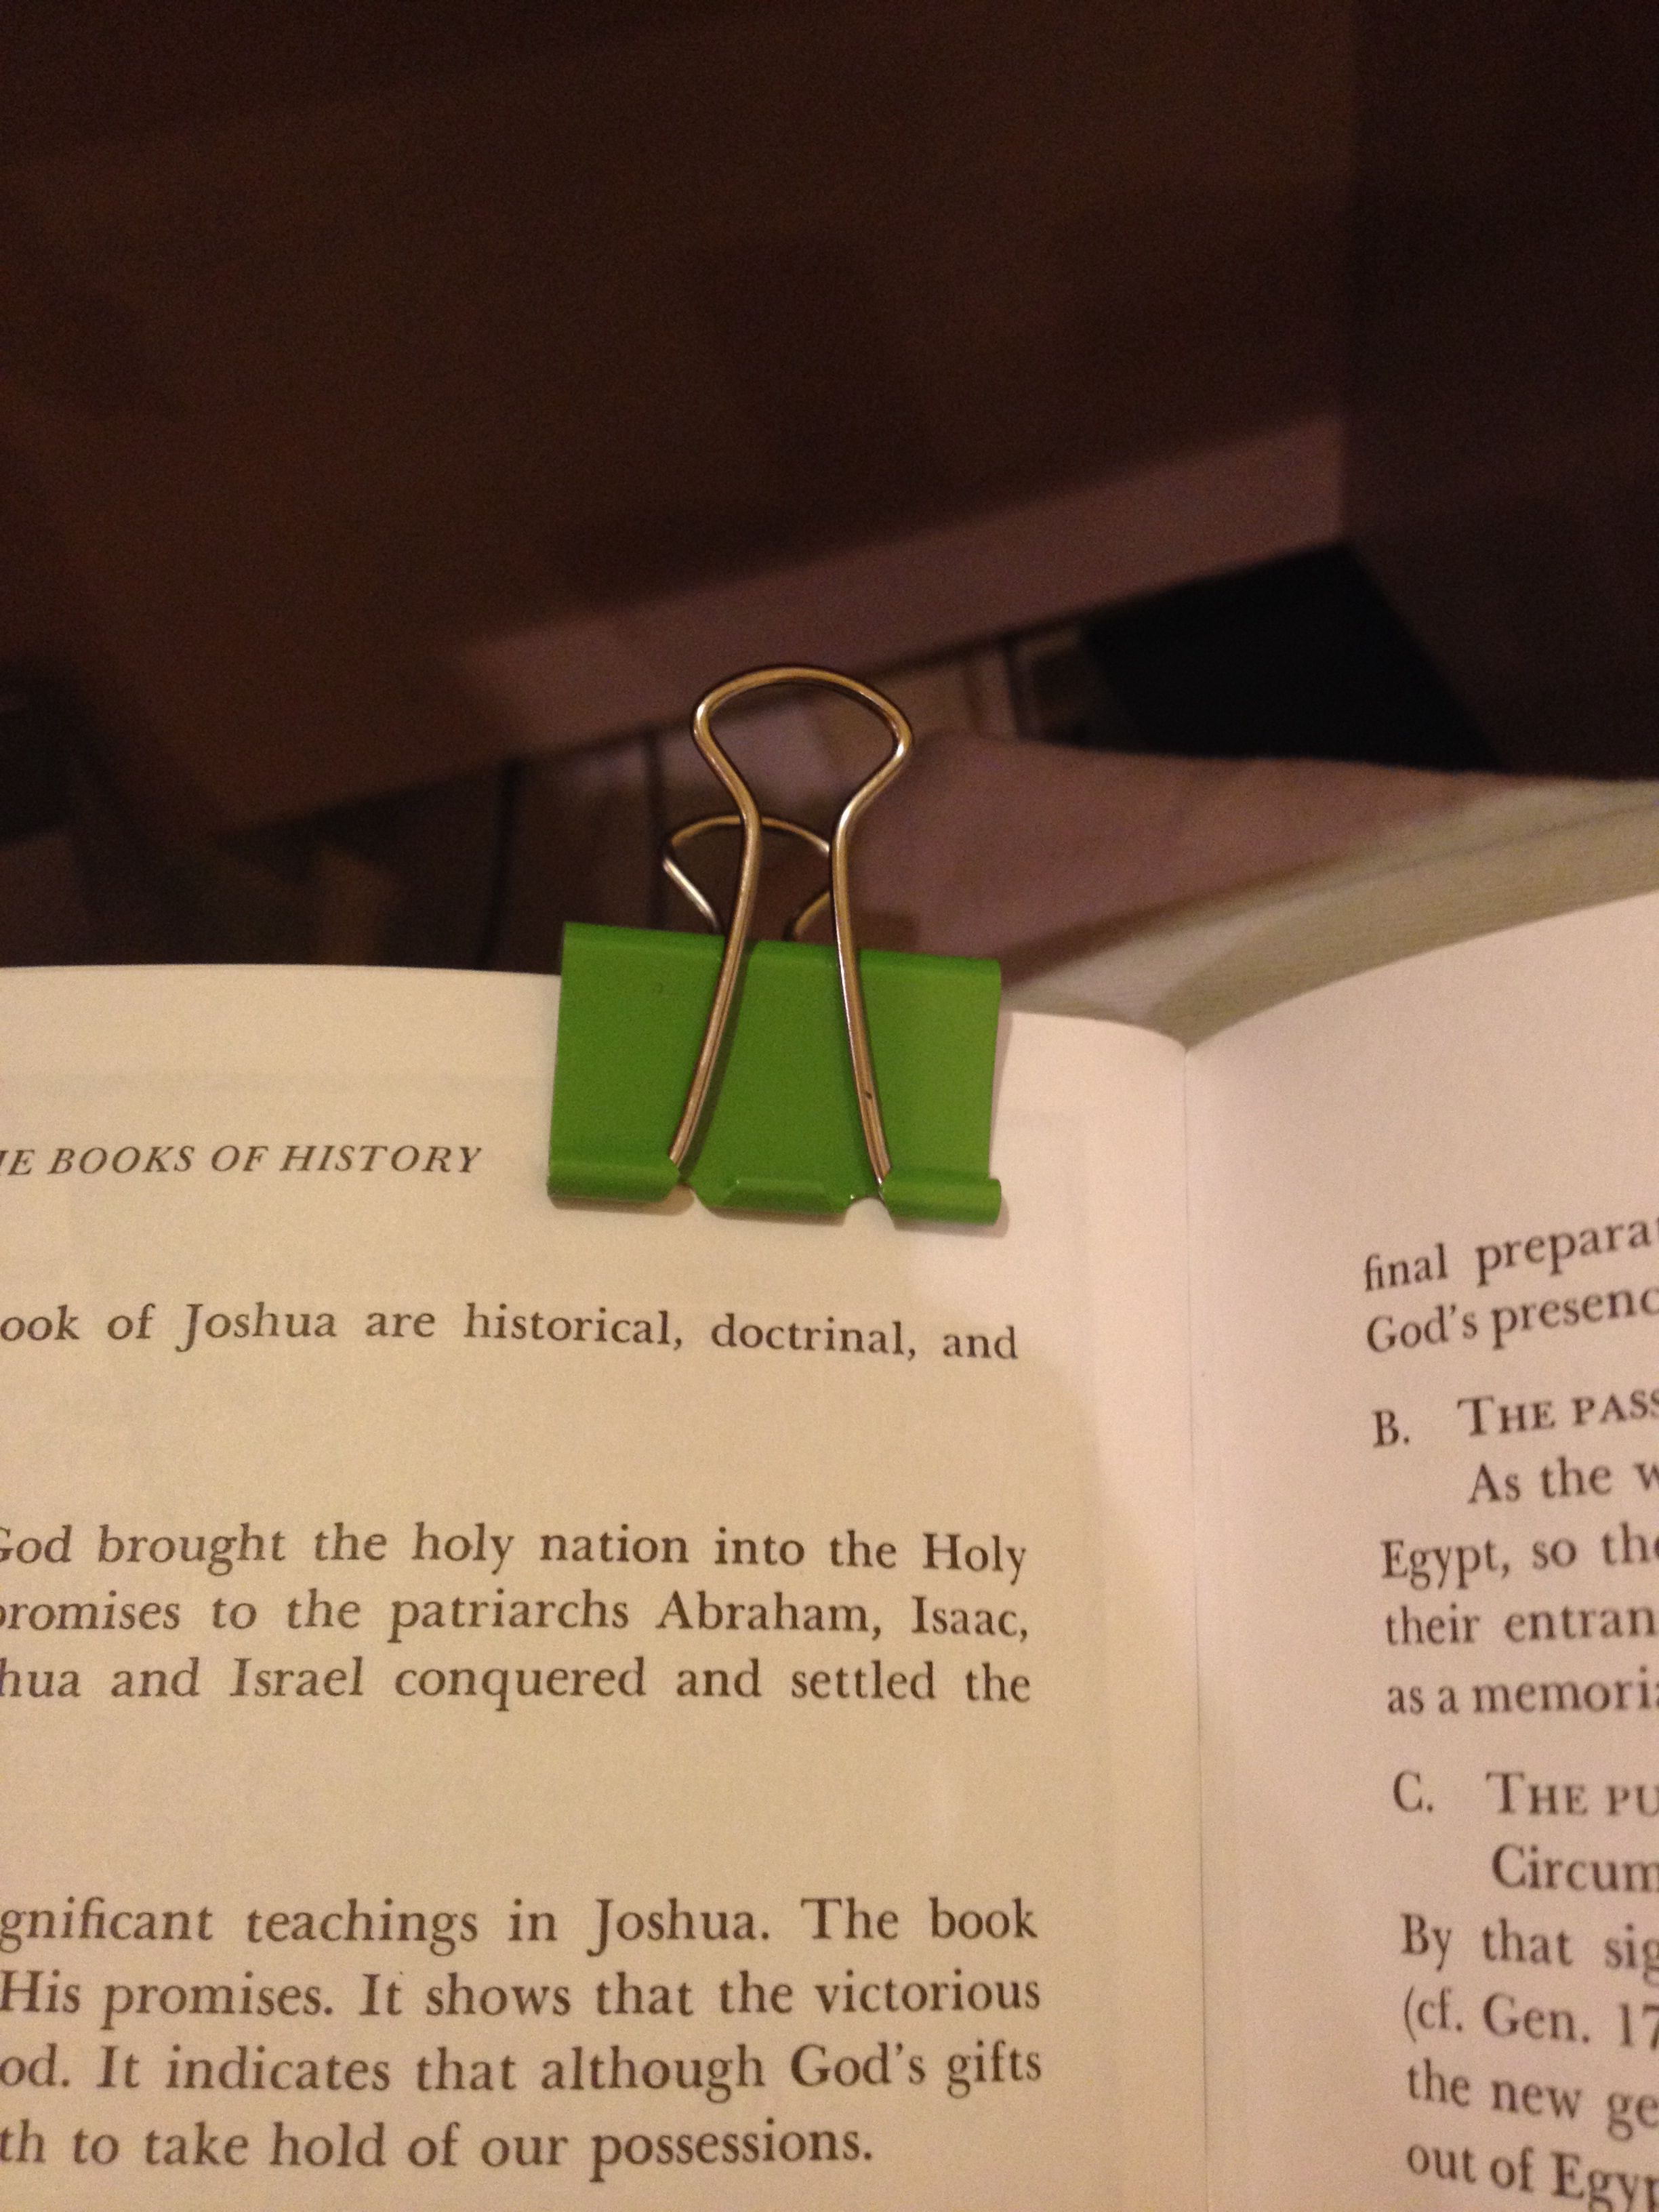 Clip this onto your book and you will never have to worry about keeping the page back!